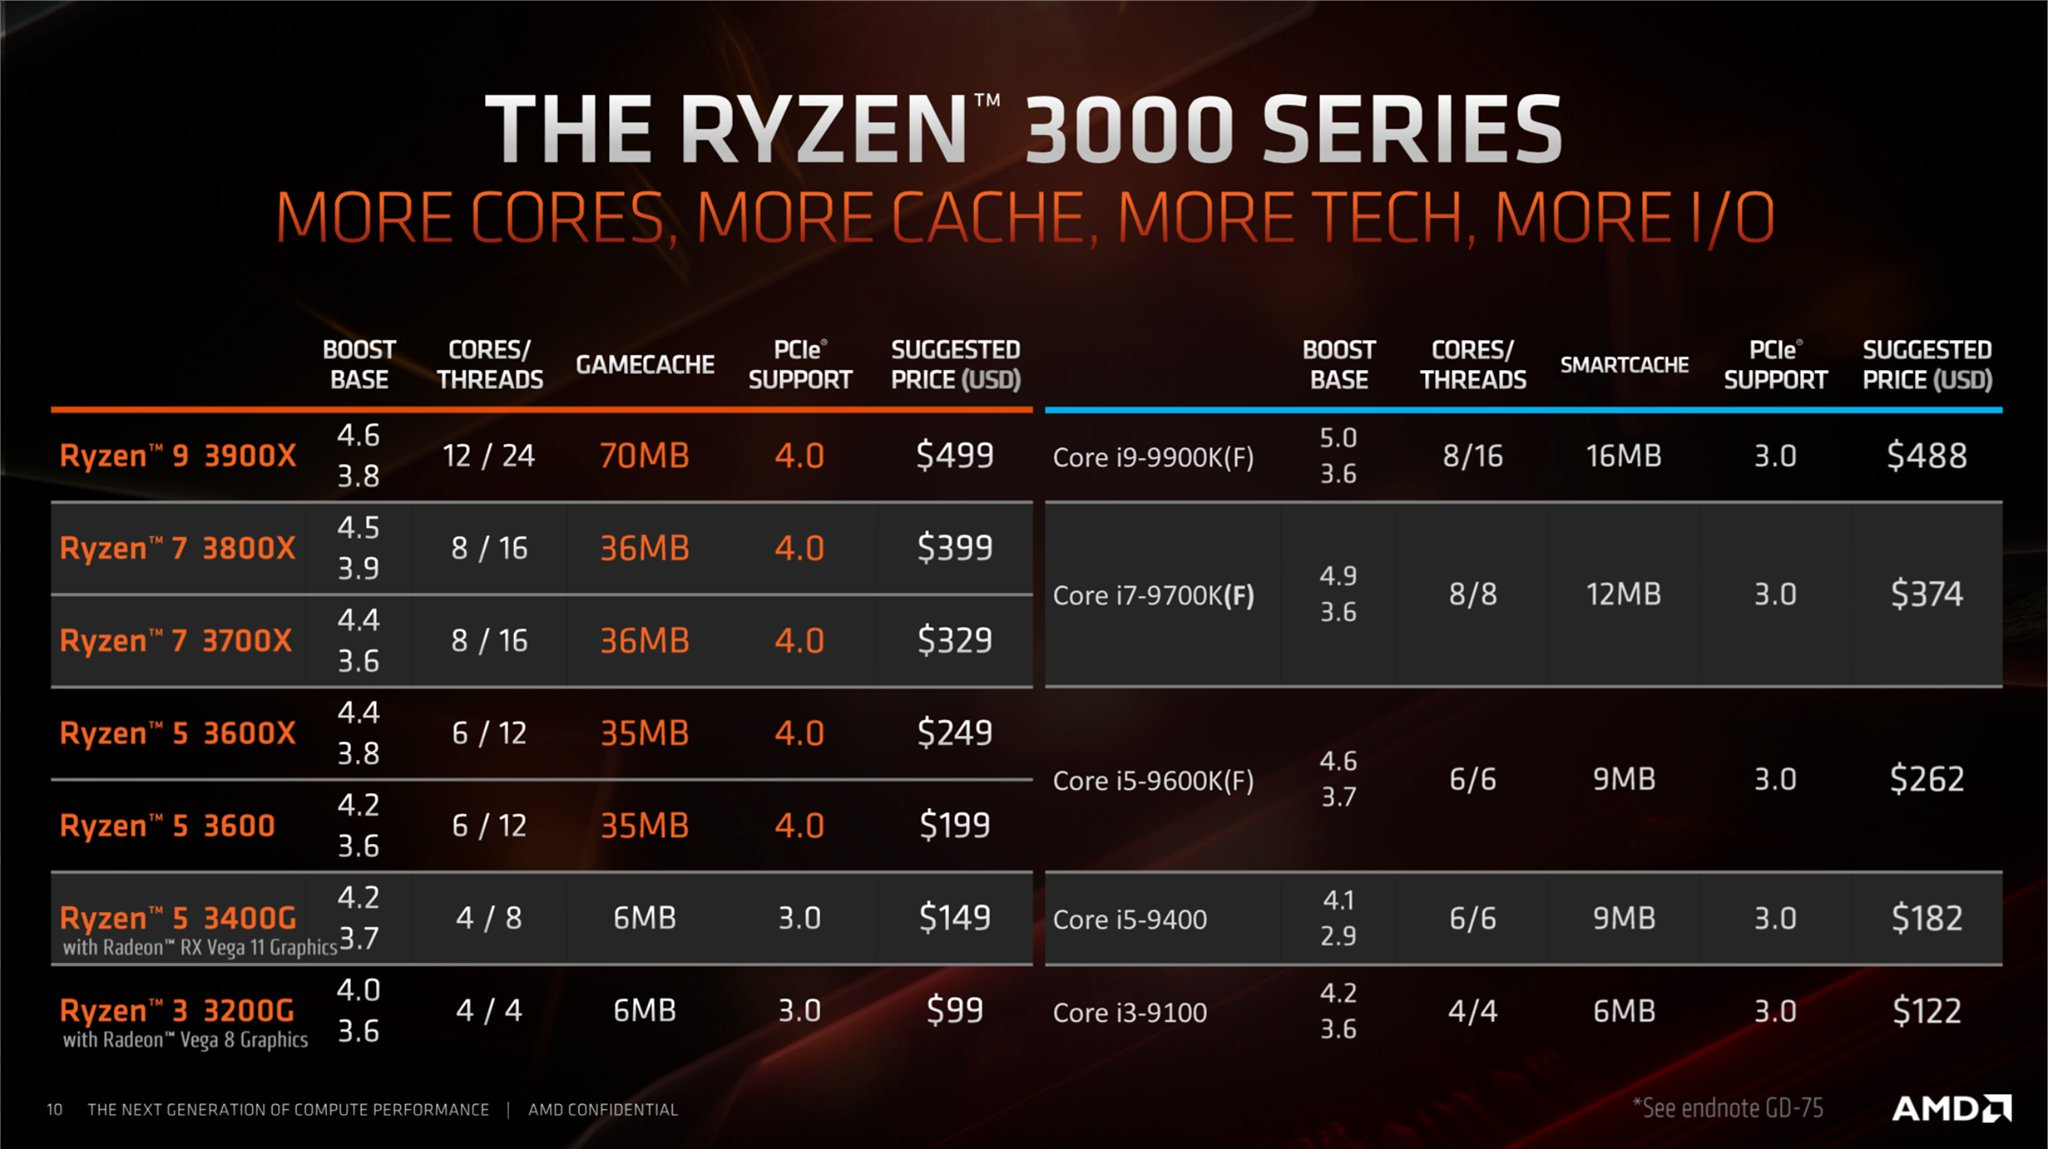 AMD Ryzen 3000 Prices & Specs Leaked - Ryzen 5 3400G APU For $149